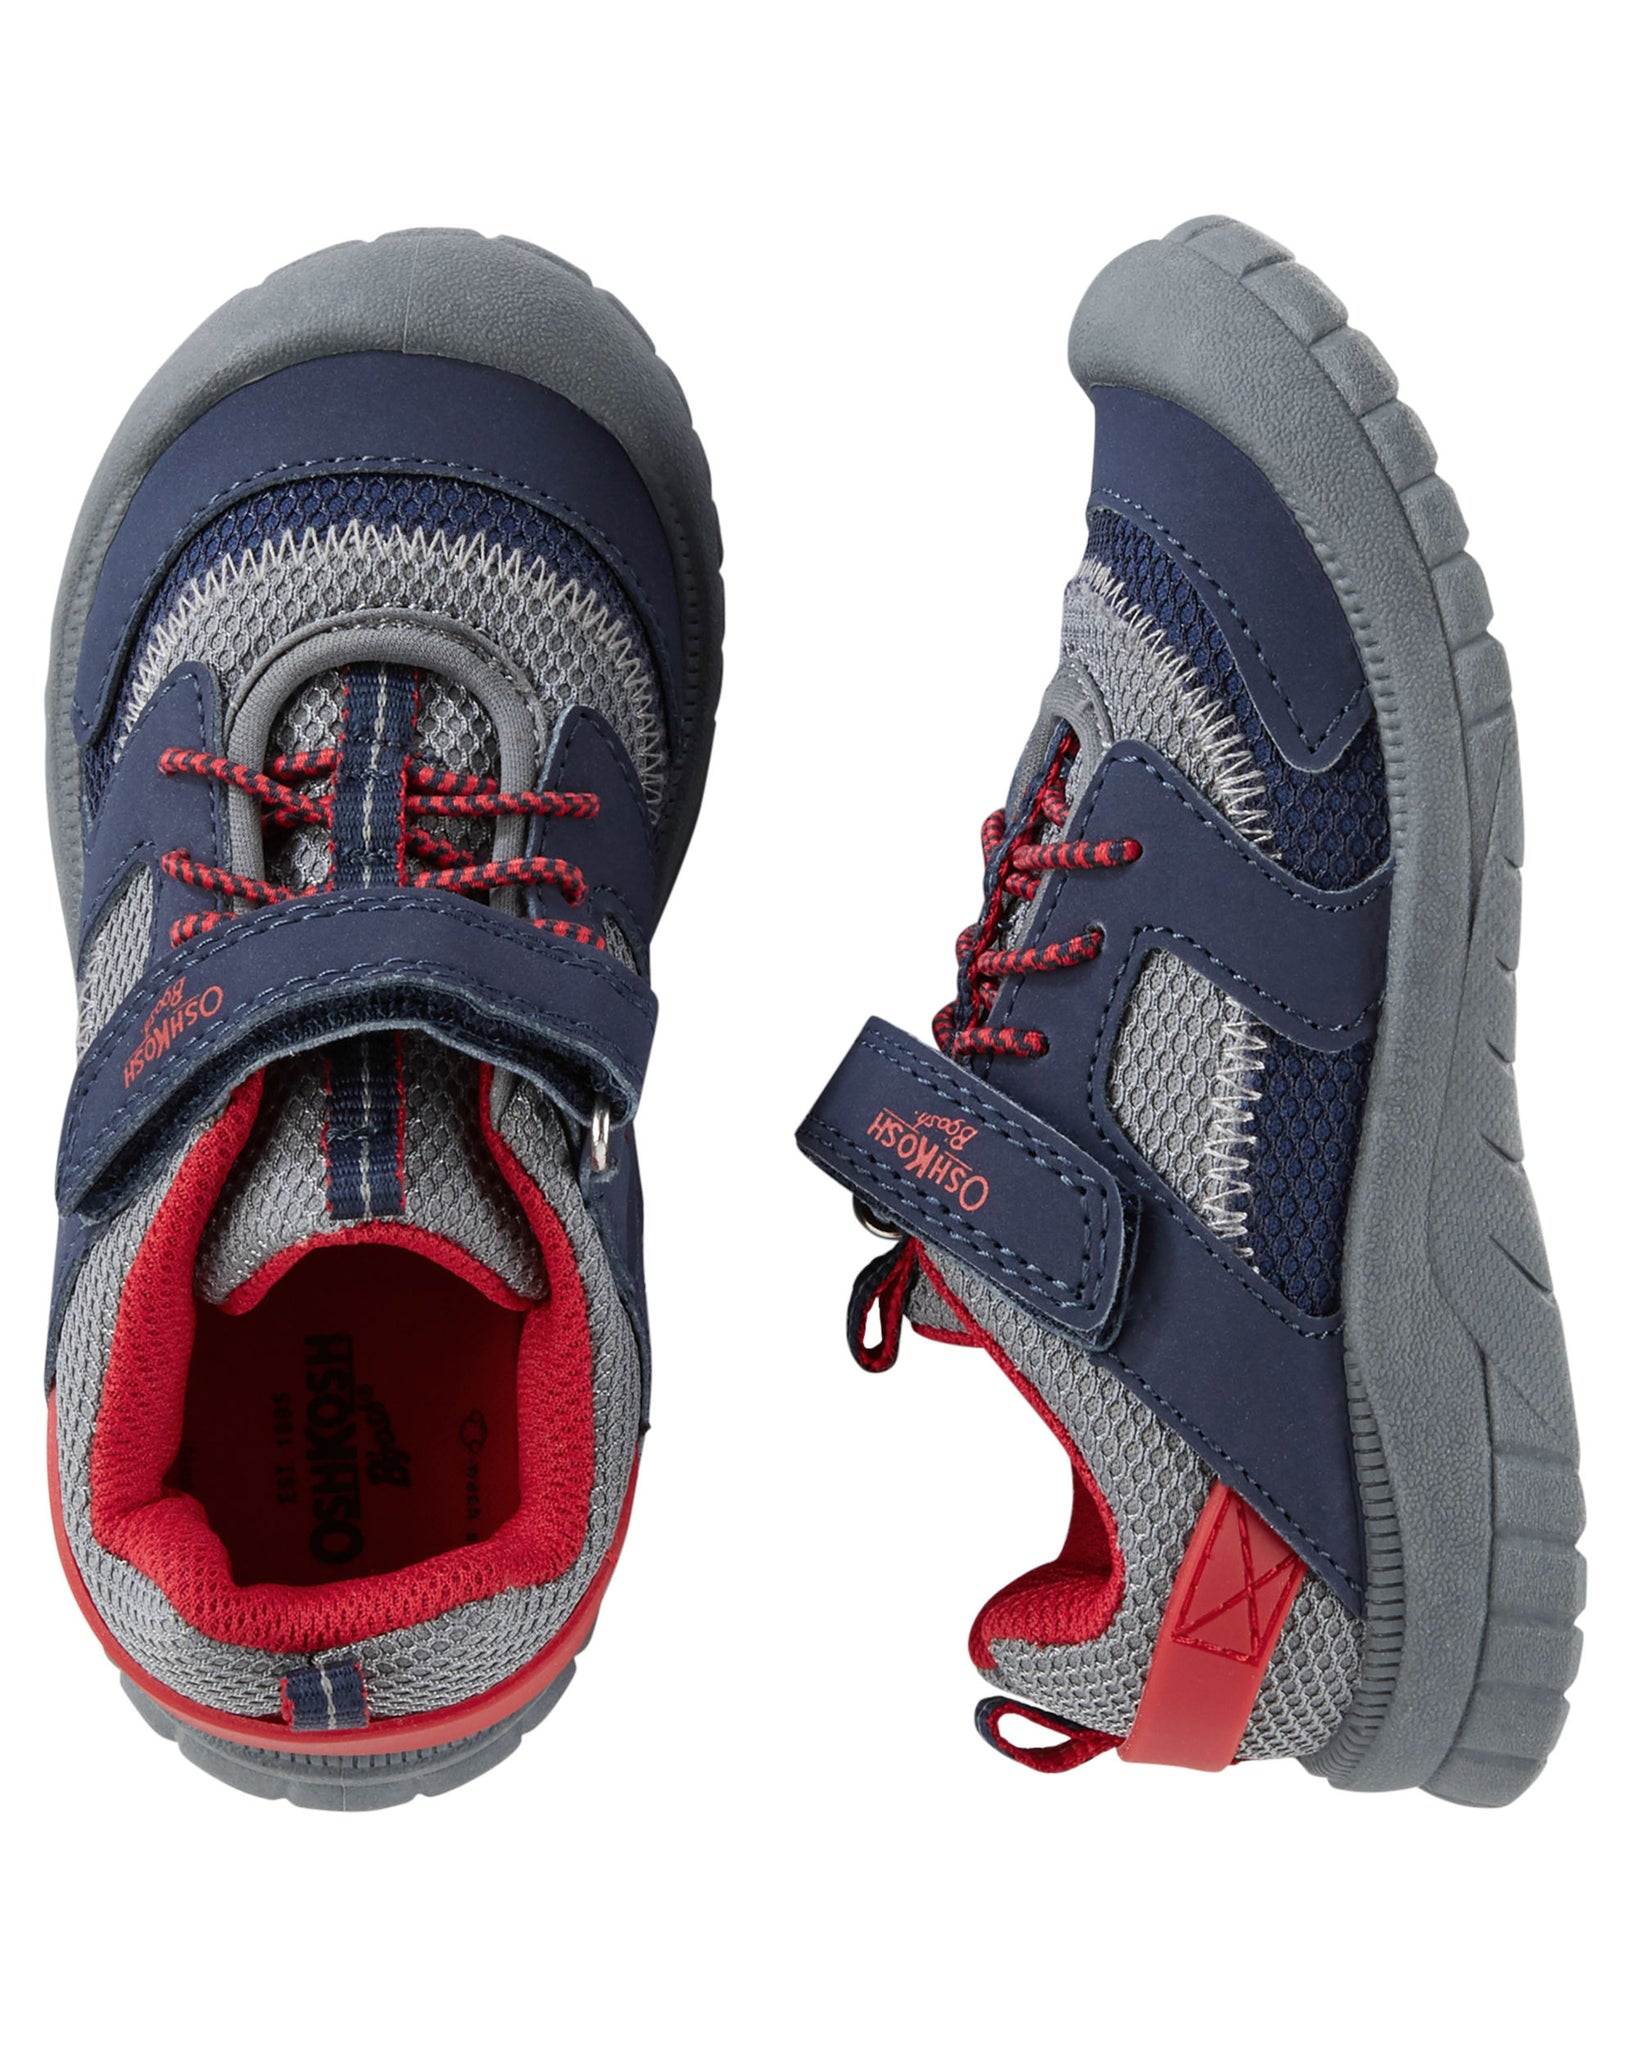 Bump Toe Athletic Sneakers